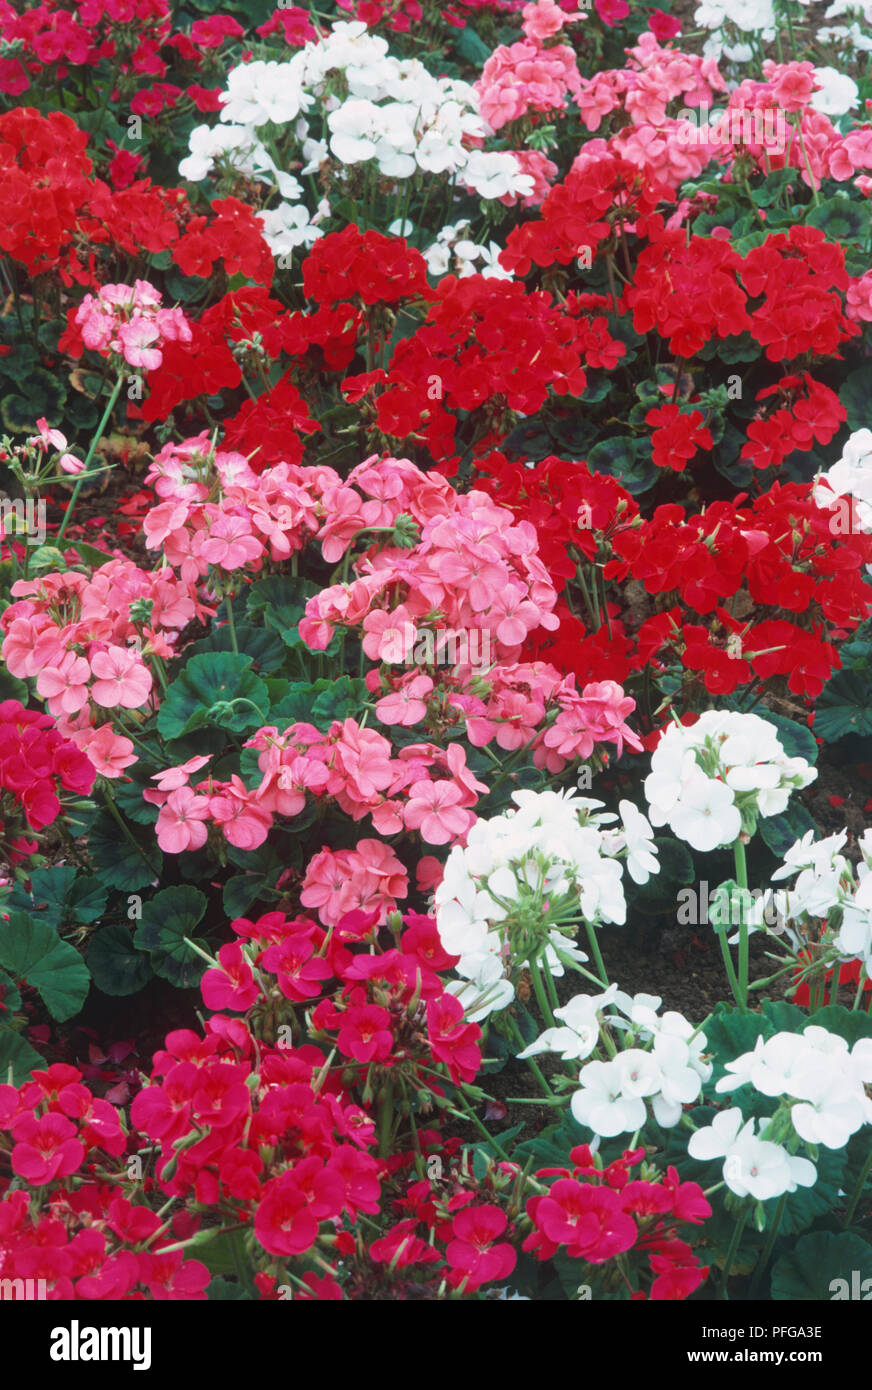 Pelargonium Multibloom Series Profusion Of Pink White And Red